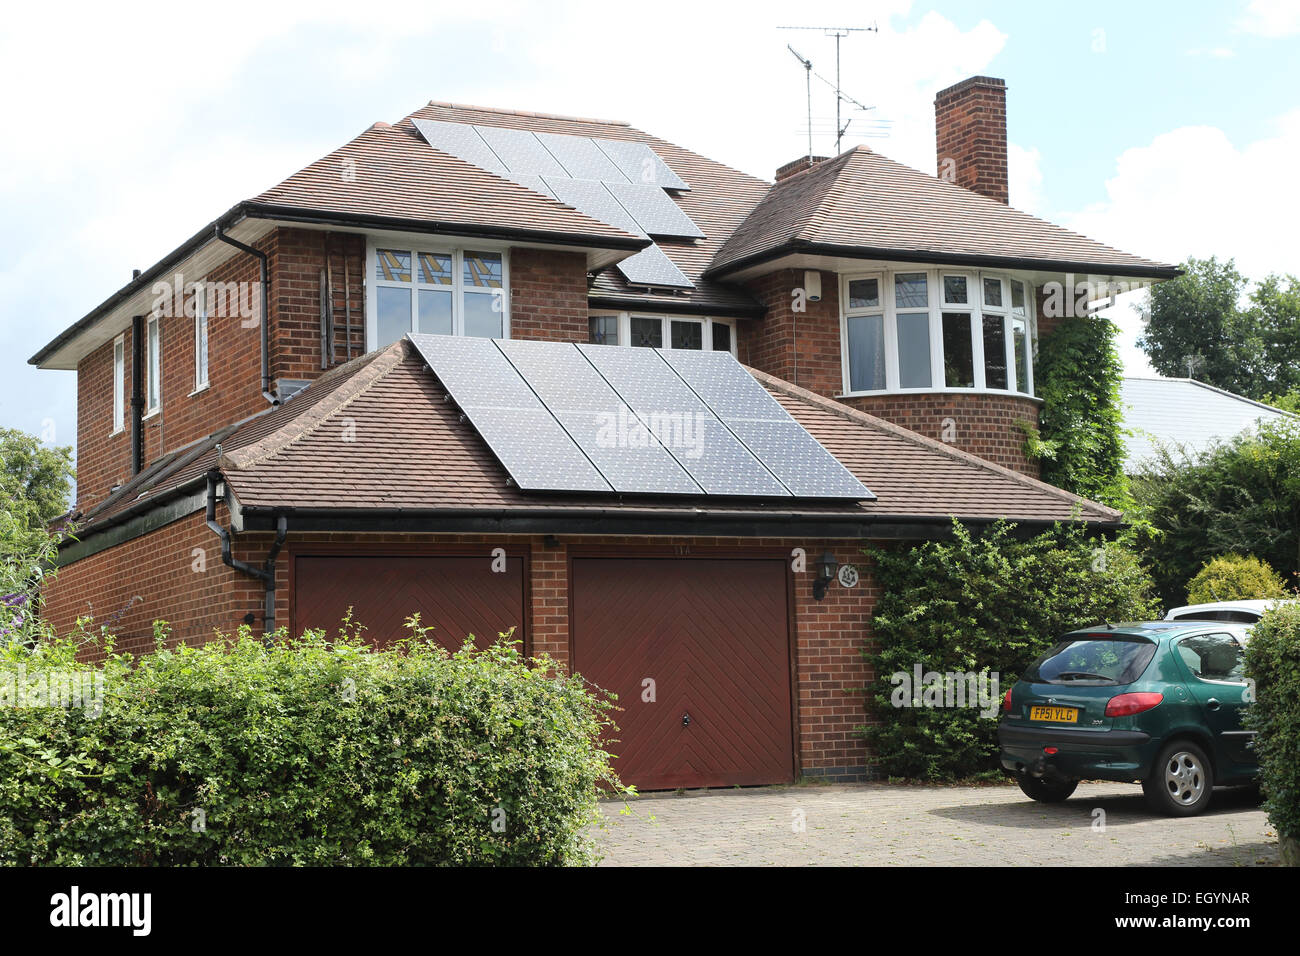 Solar panels on detached house - Stock Image